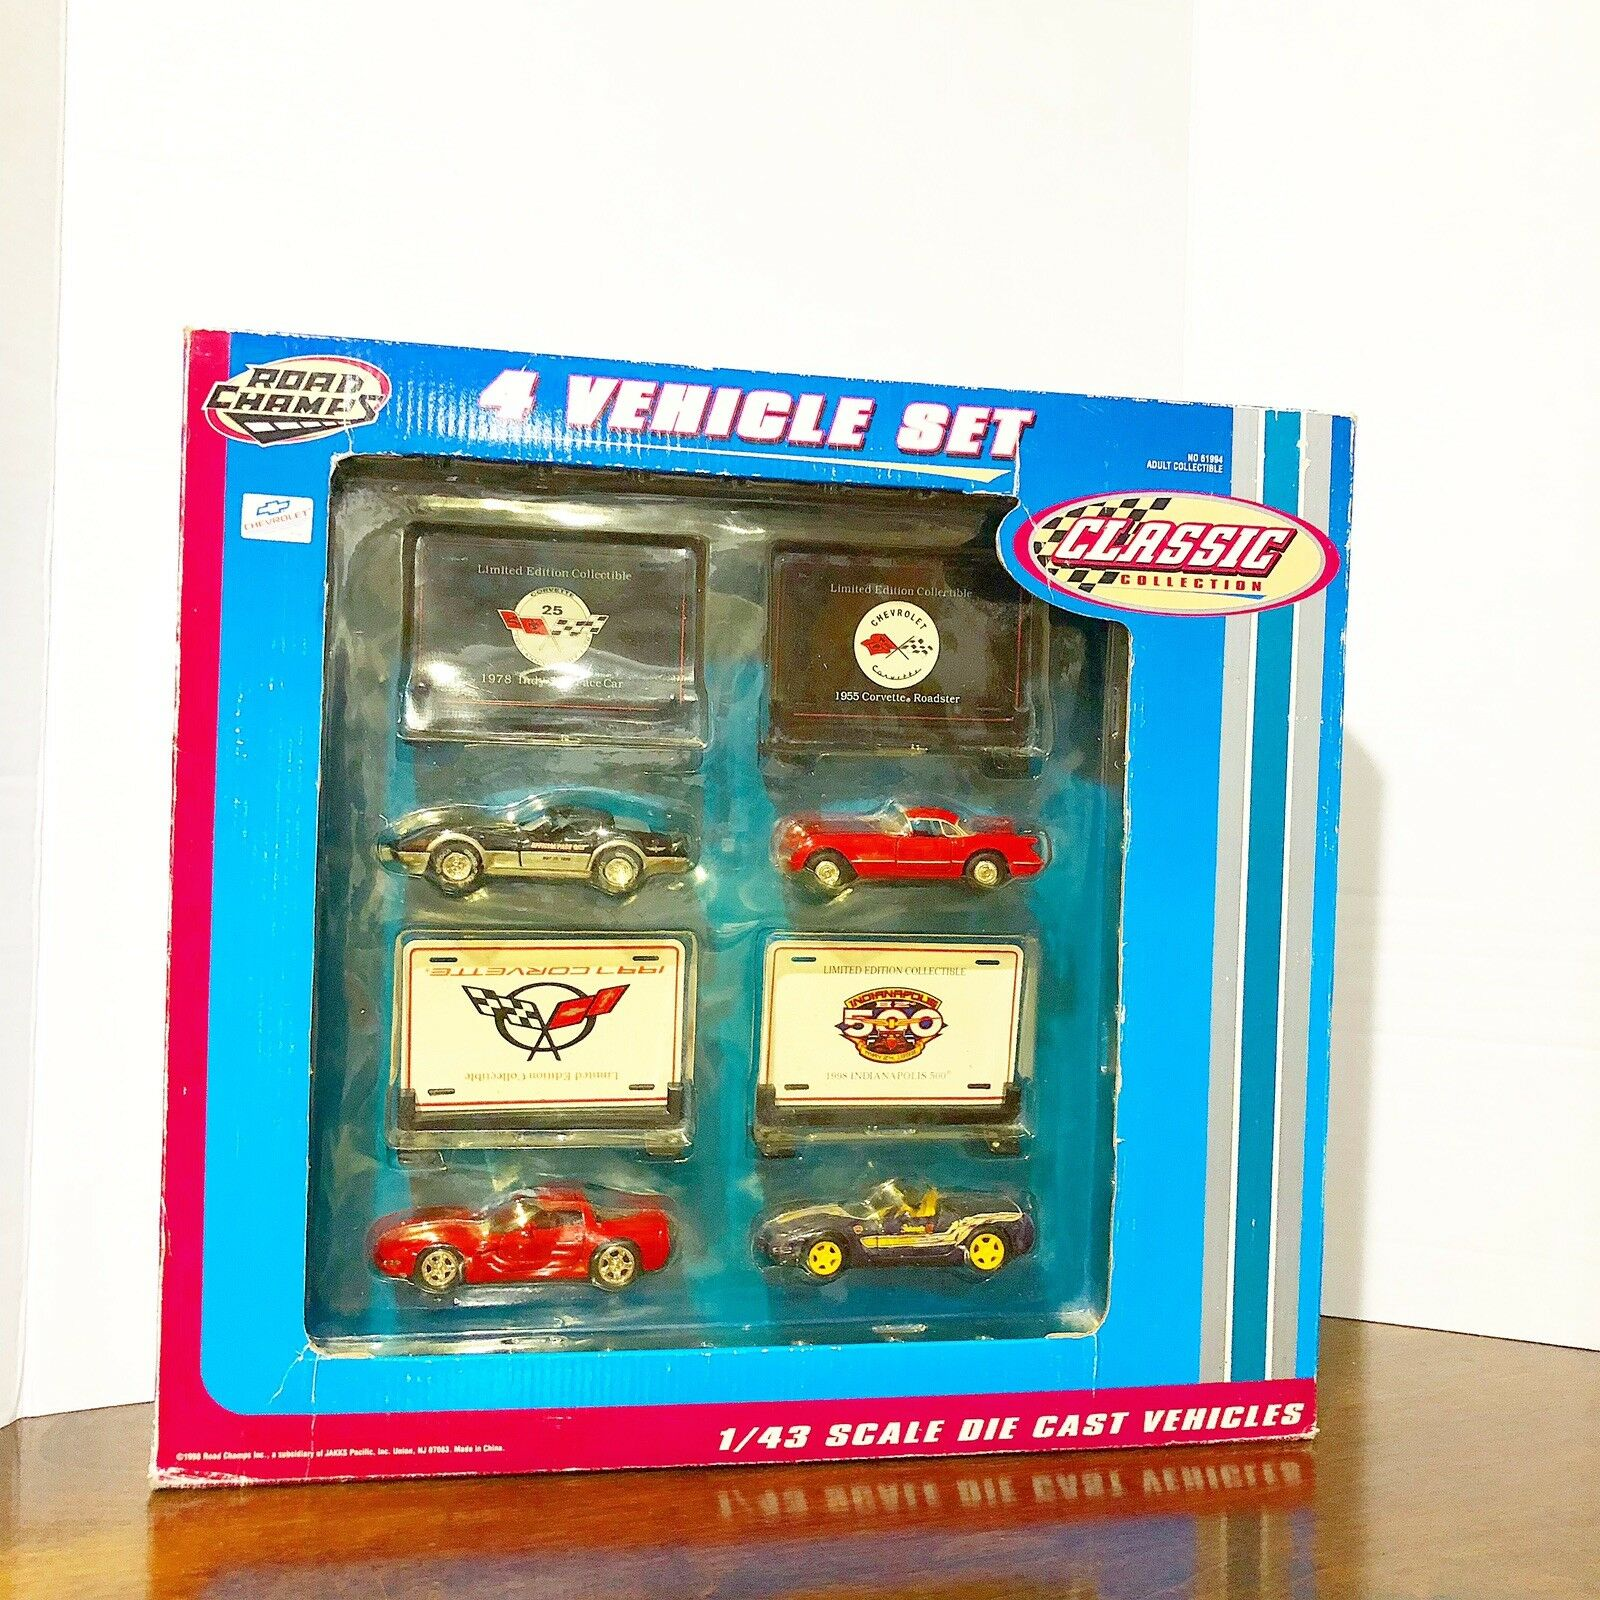 DIECAST DIECAST DIECAST 1 43 Road Champs  Classic Collection  4 Vehicle Set New In Box 479b52